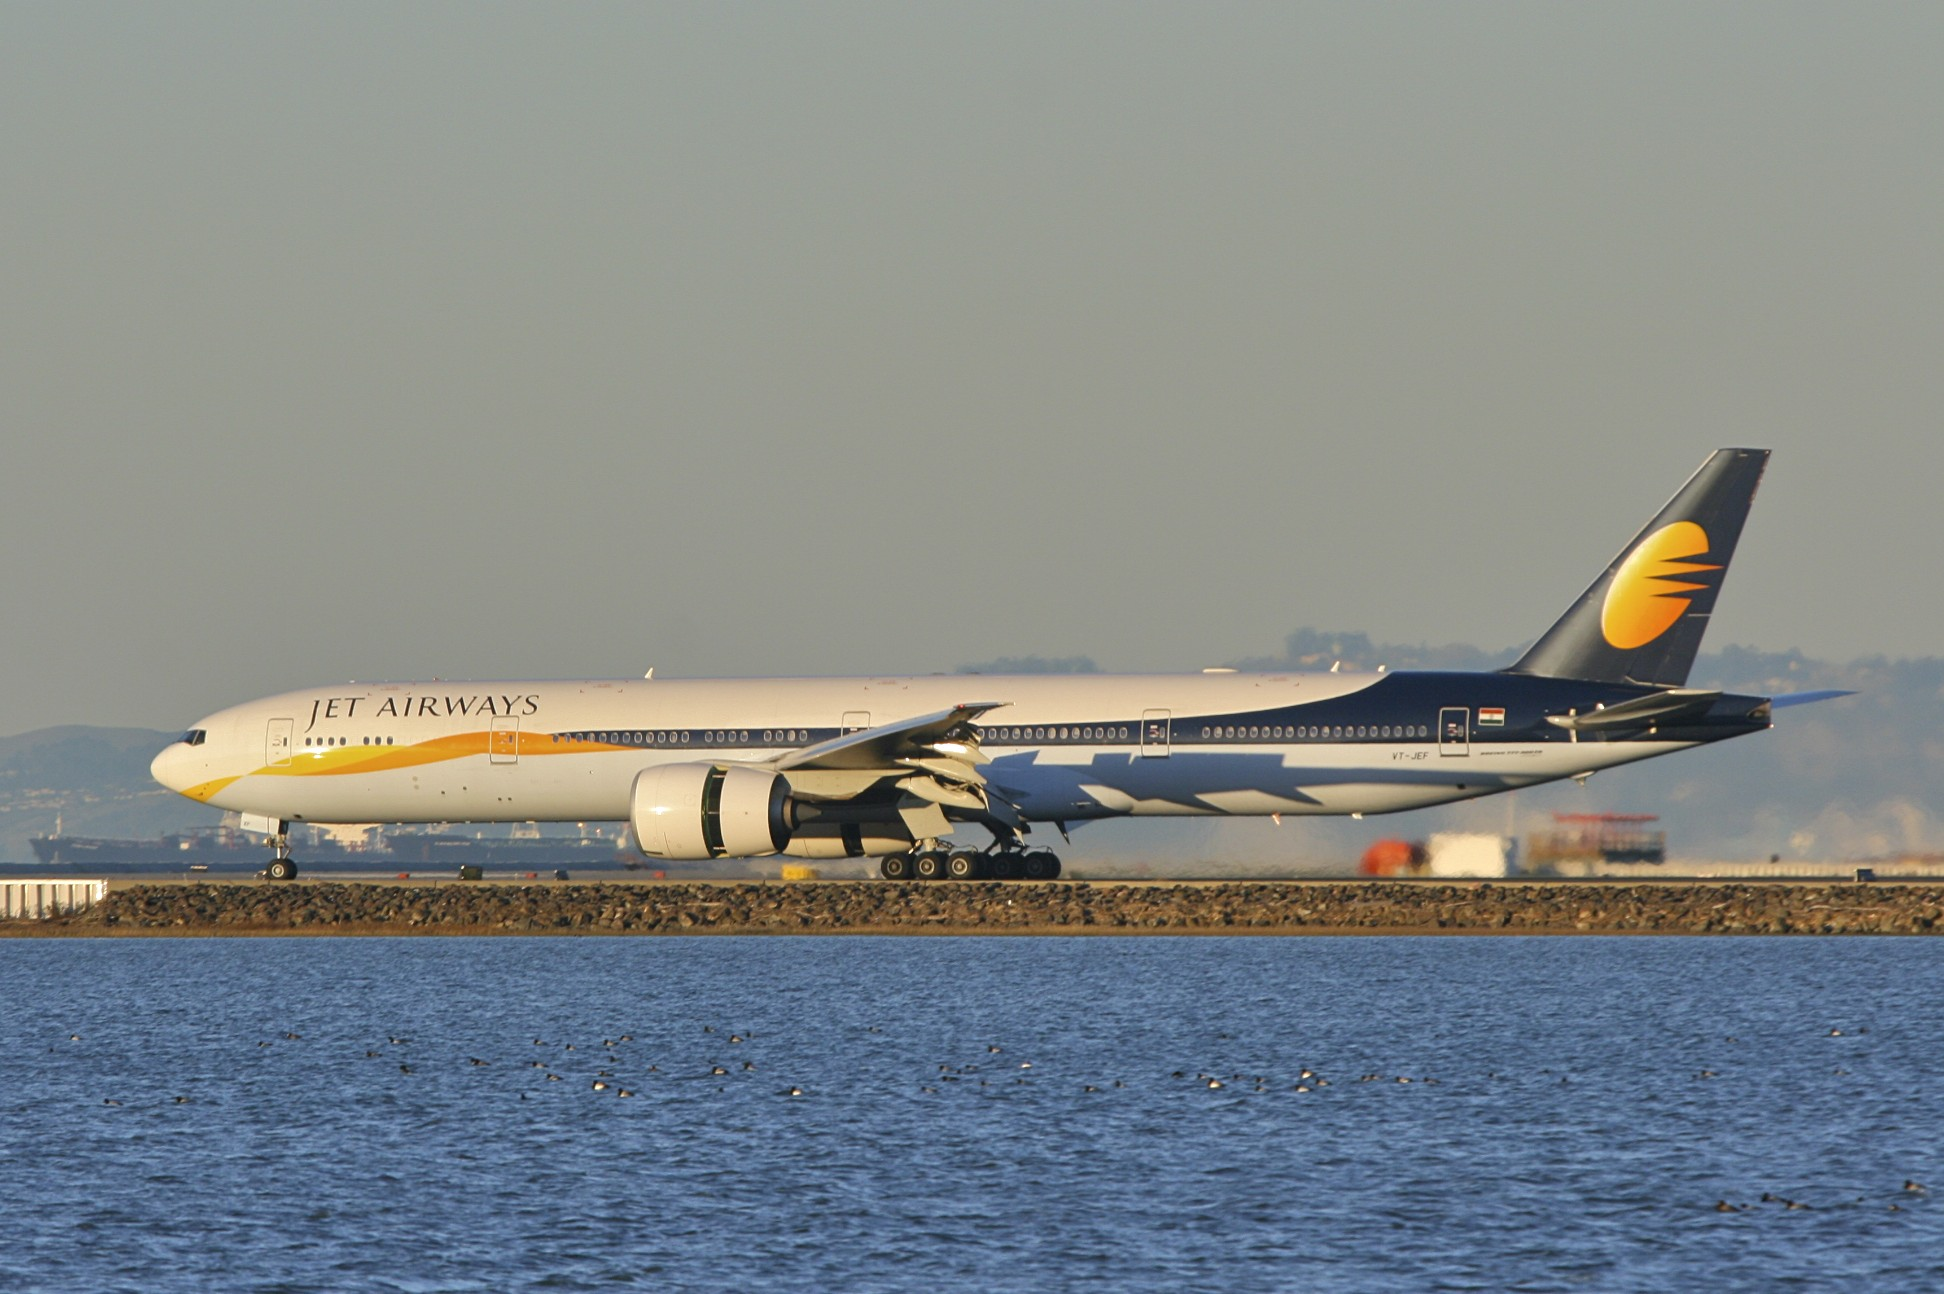 Jet Airways San Francisco.jpg